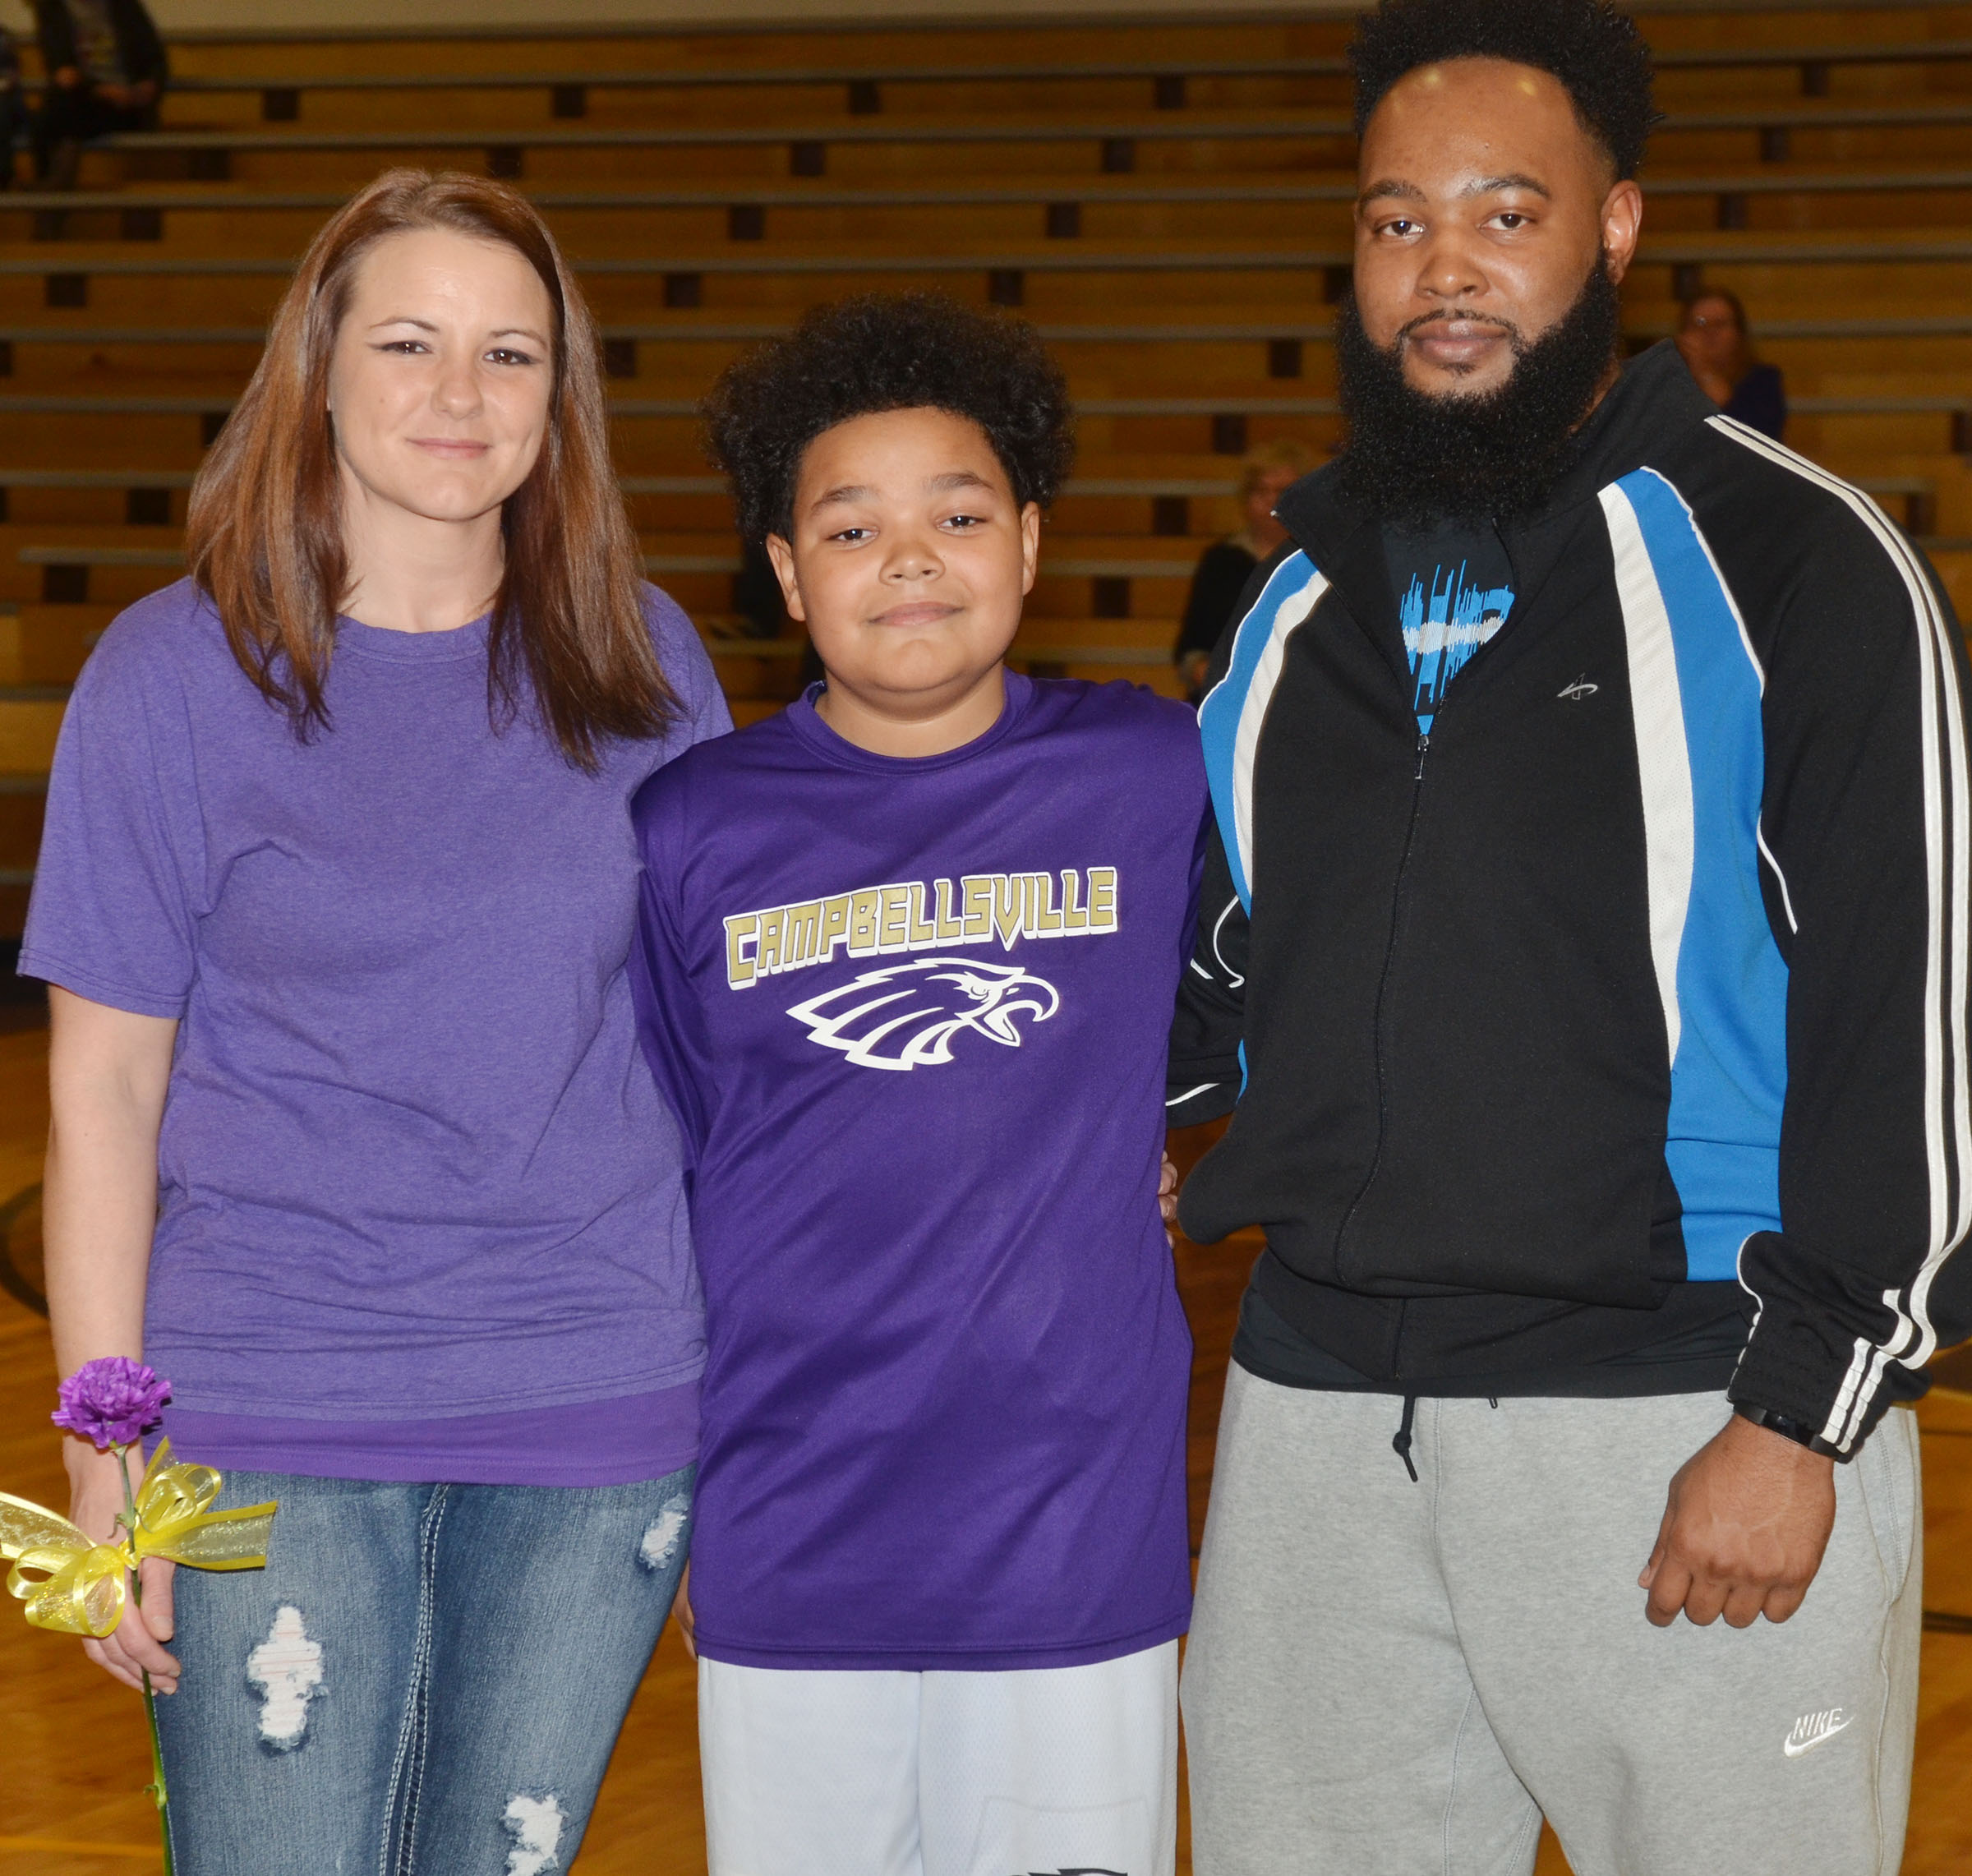 CMS eighth-grader Alex Lofton is honored. He is pictured with his parents, Ronacka and Keith.